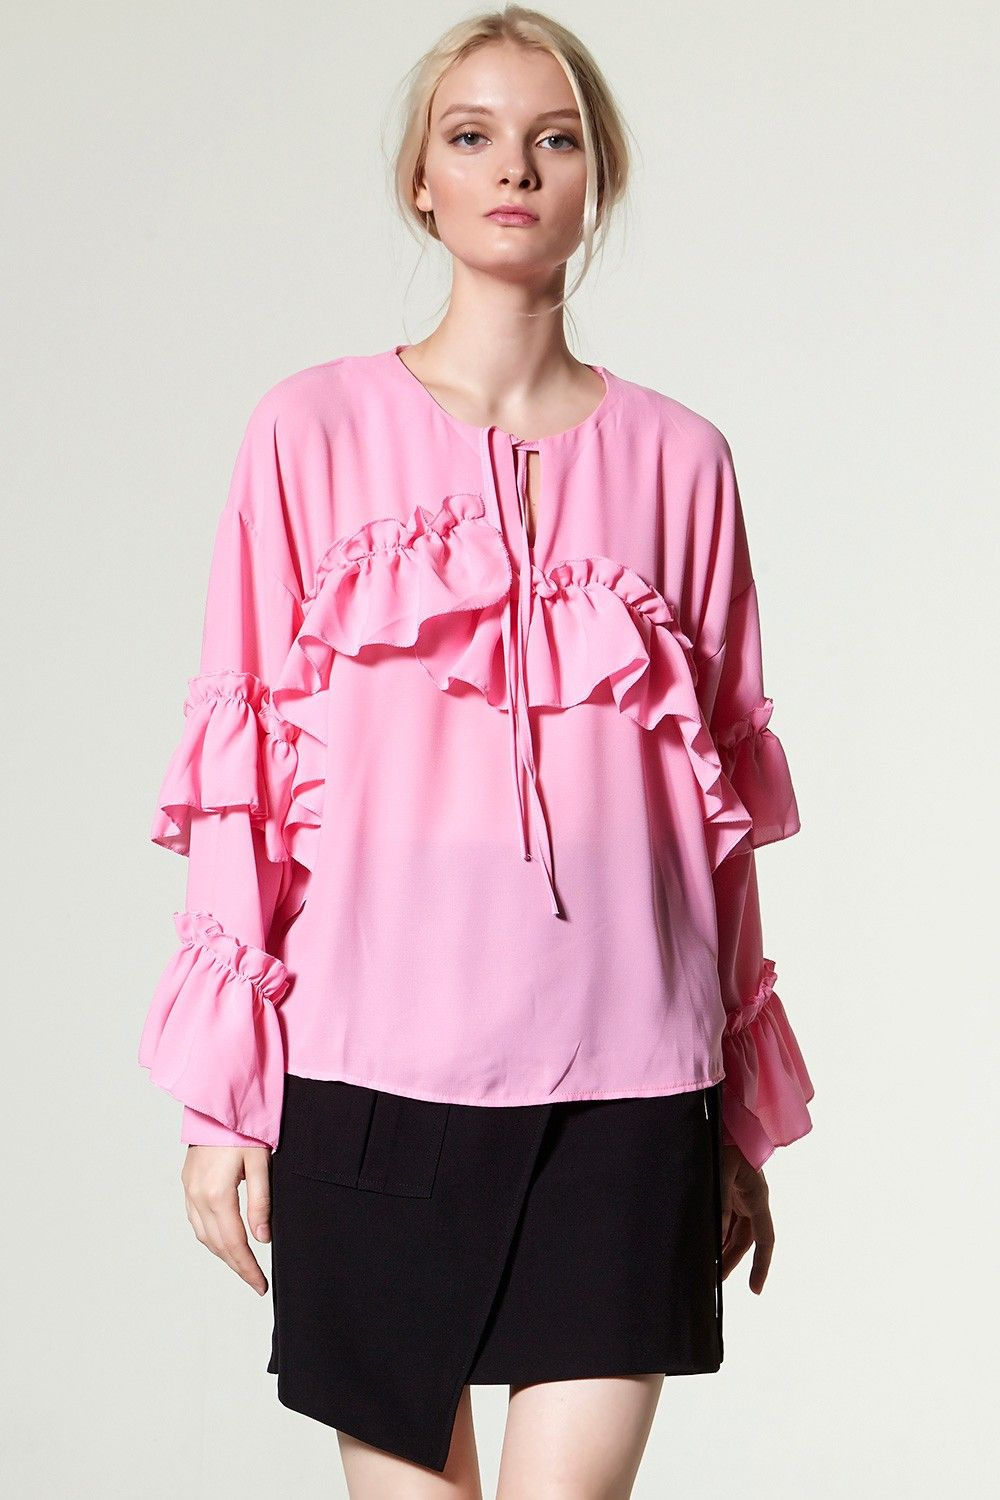 e90f7d8190a3a Dana Ruffl Blouse Discover the latest fashion trends online at storets.com